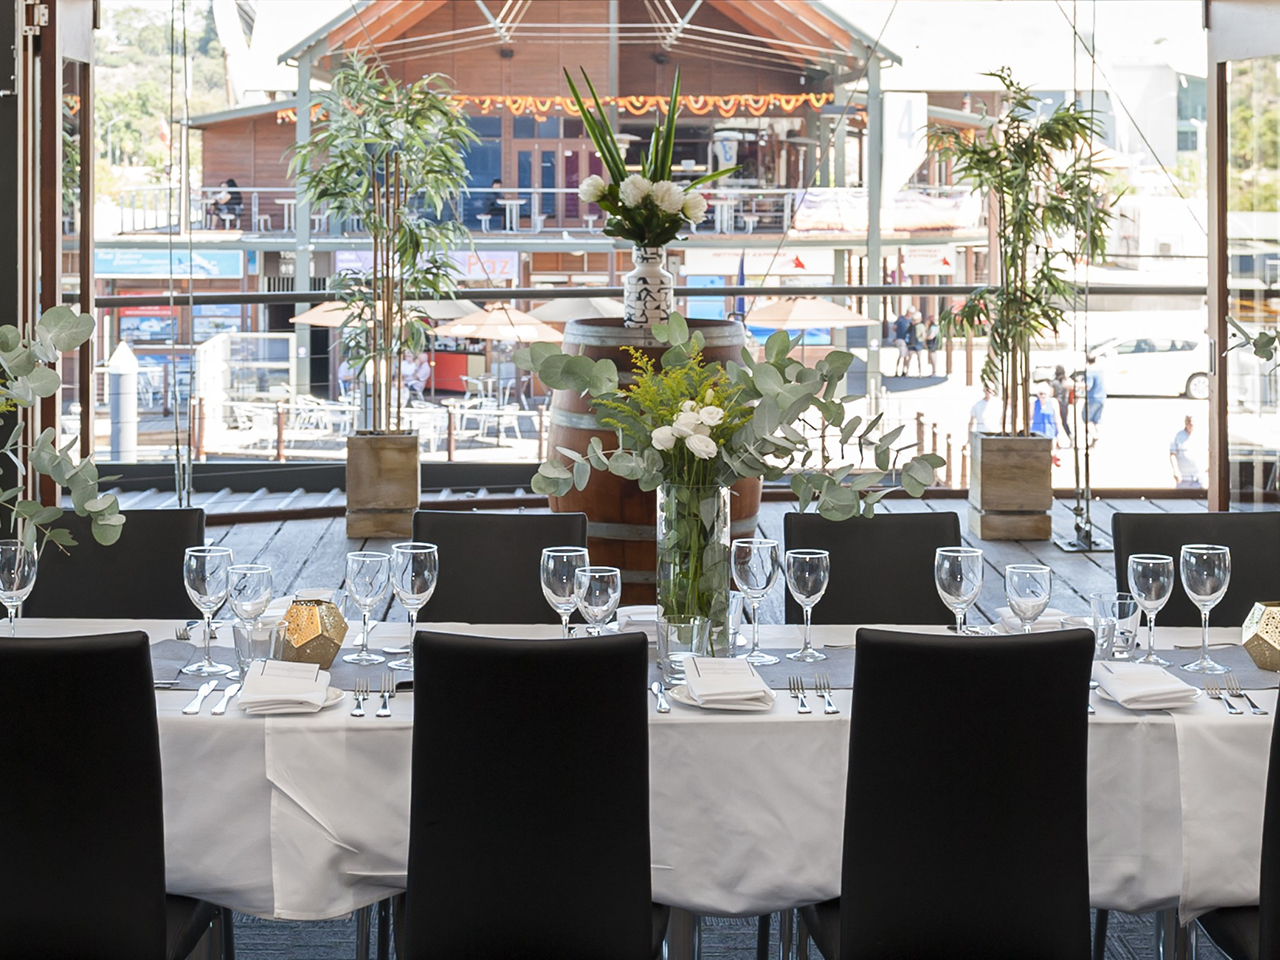 Chairs And A Long Table Setup For A Corporate Event With A Balcony Behind at the Perth Function Venue